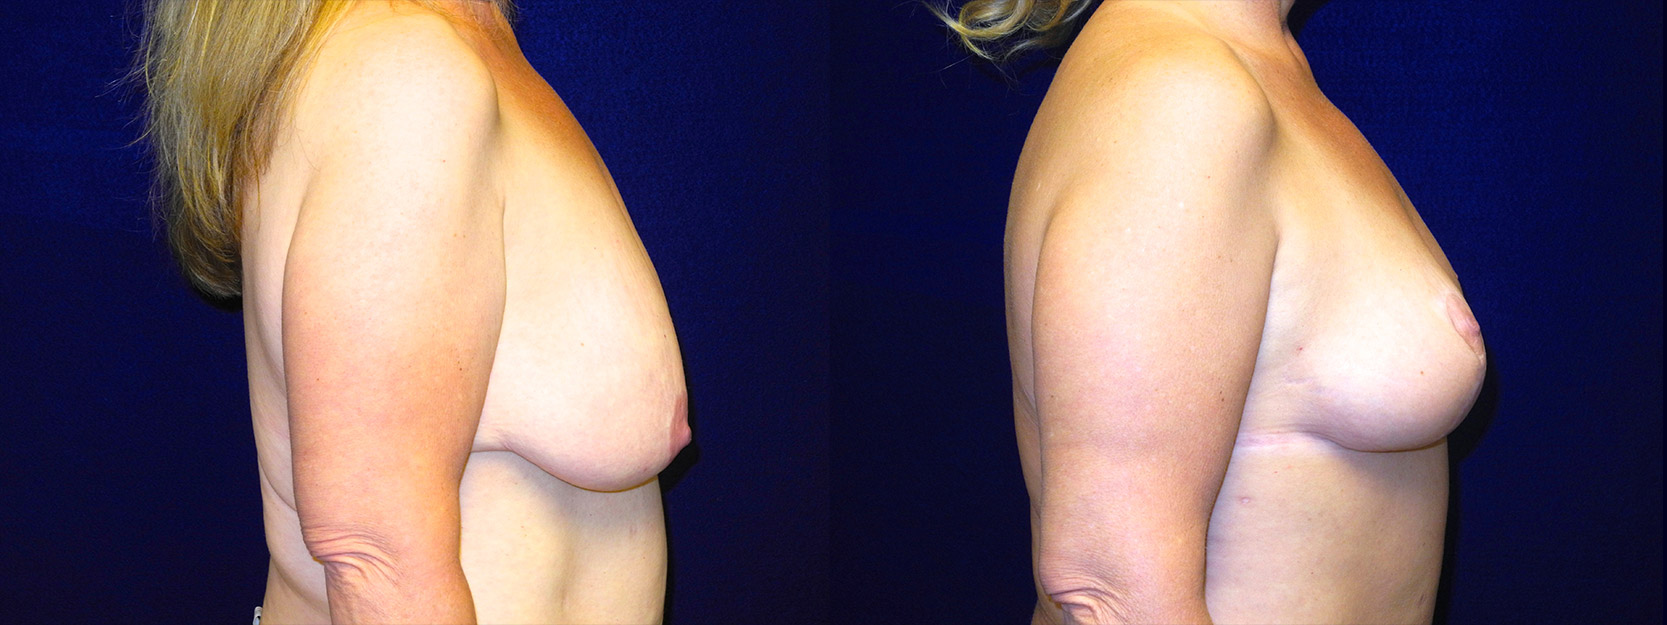 Right Profile View - Breast Lift After Massive Weight Loss